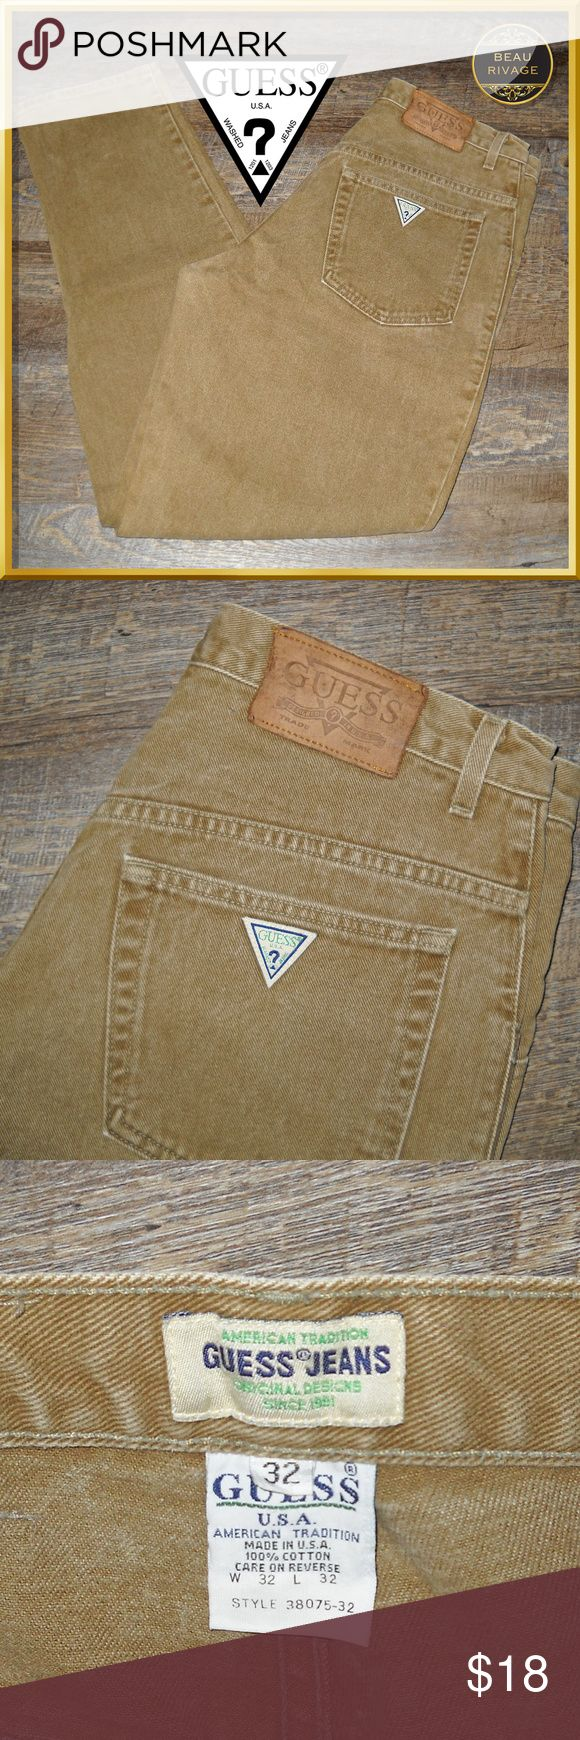 Guess Jeans Mens Vintage Brown Size 32 Men's Guess Jeans Vintage. Bought in the early 90's and well taken care of.  Size 32 waist  32 inseam, tapered leg   100% cotton   MADE IN USA   Machine wash separately, warm water   Tumble dry low   No trades please   Please use offer button   Pet free and smoke free home GUESS Jeans